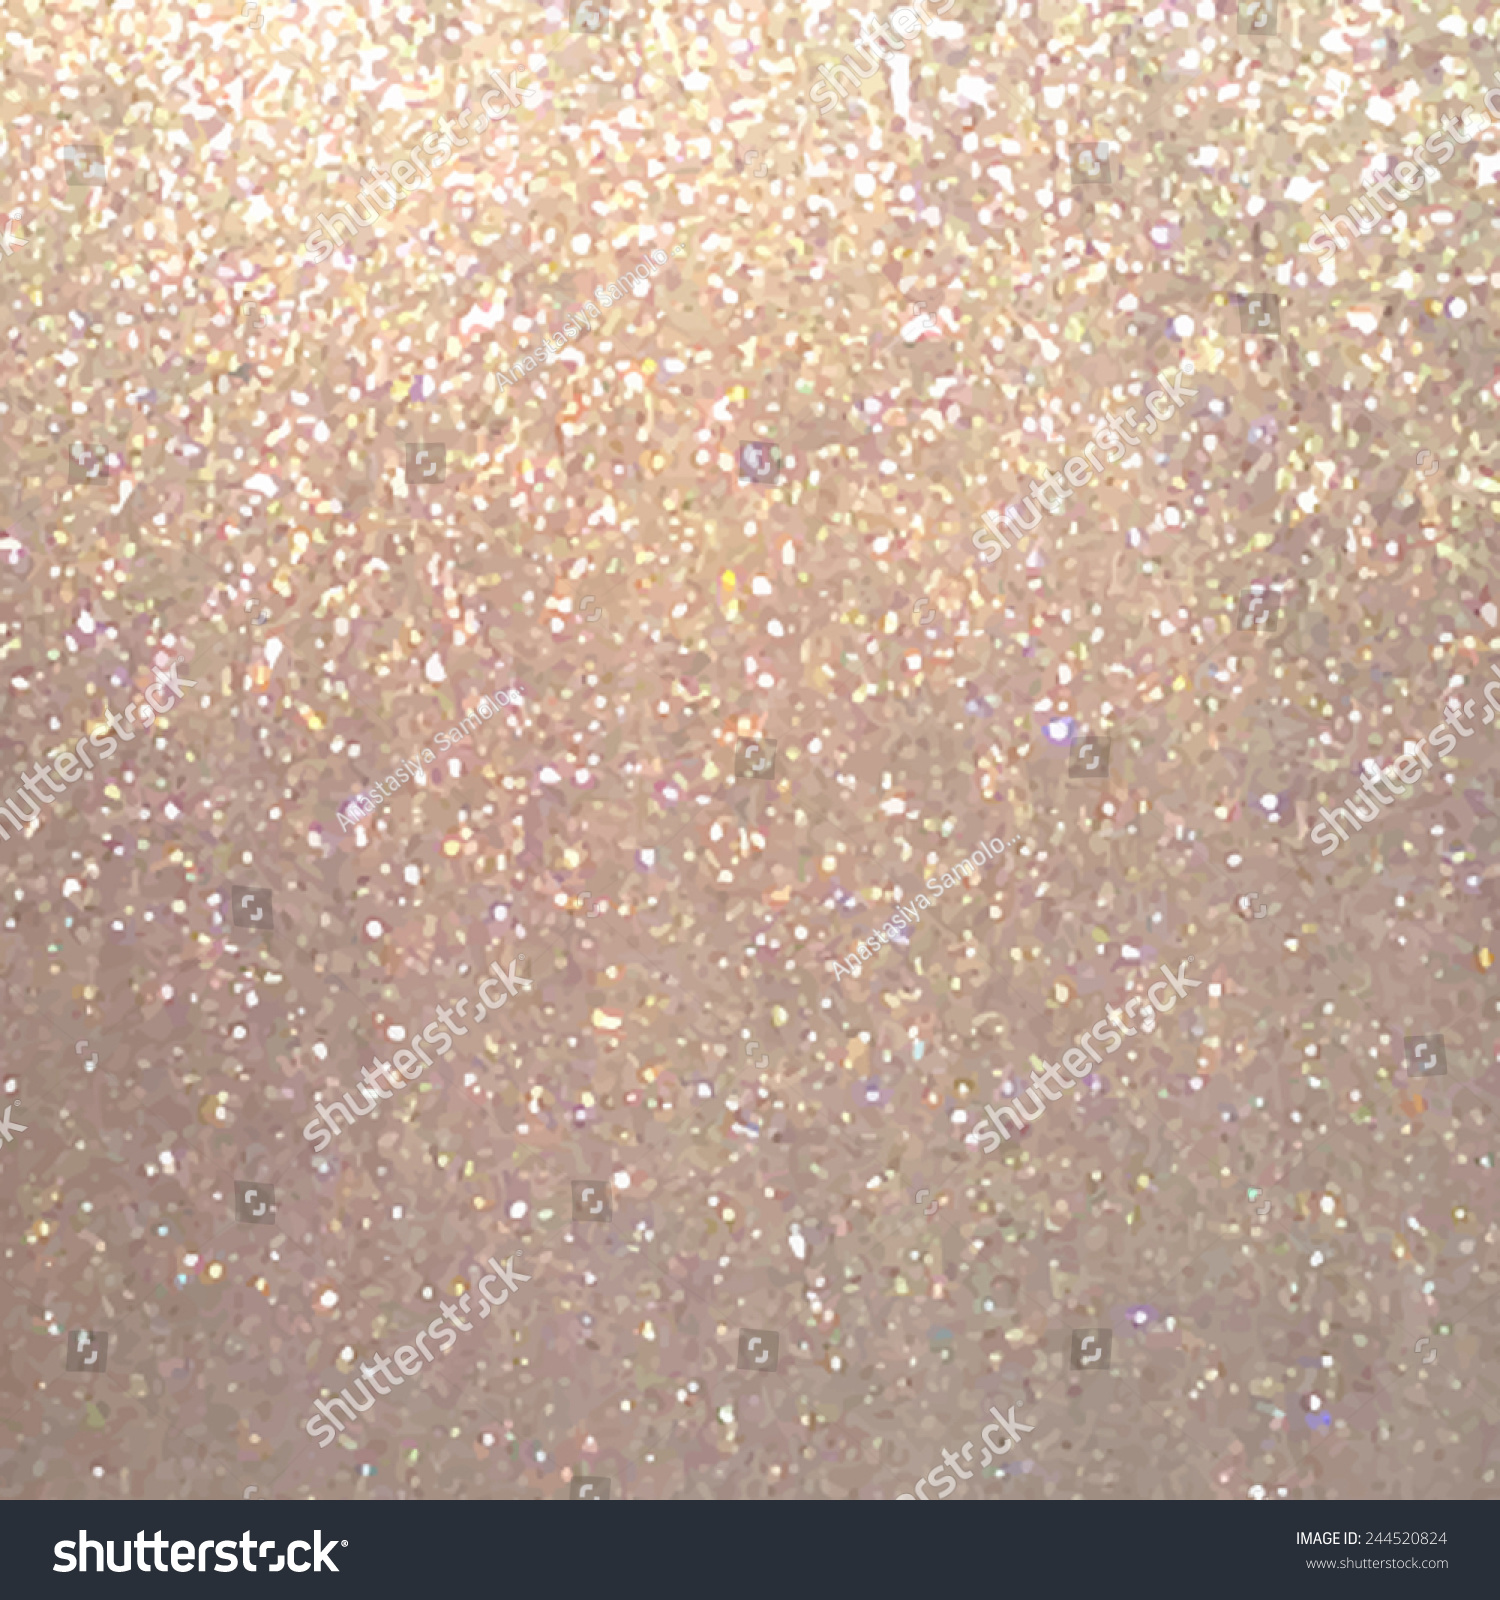 Glitter Metallic Background Metal Bronze Texture Wallpaper Design Card With SparklesTraced Vector